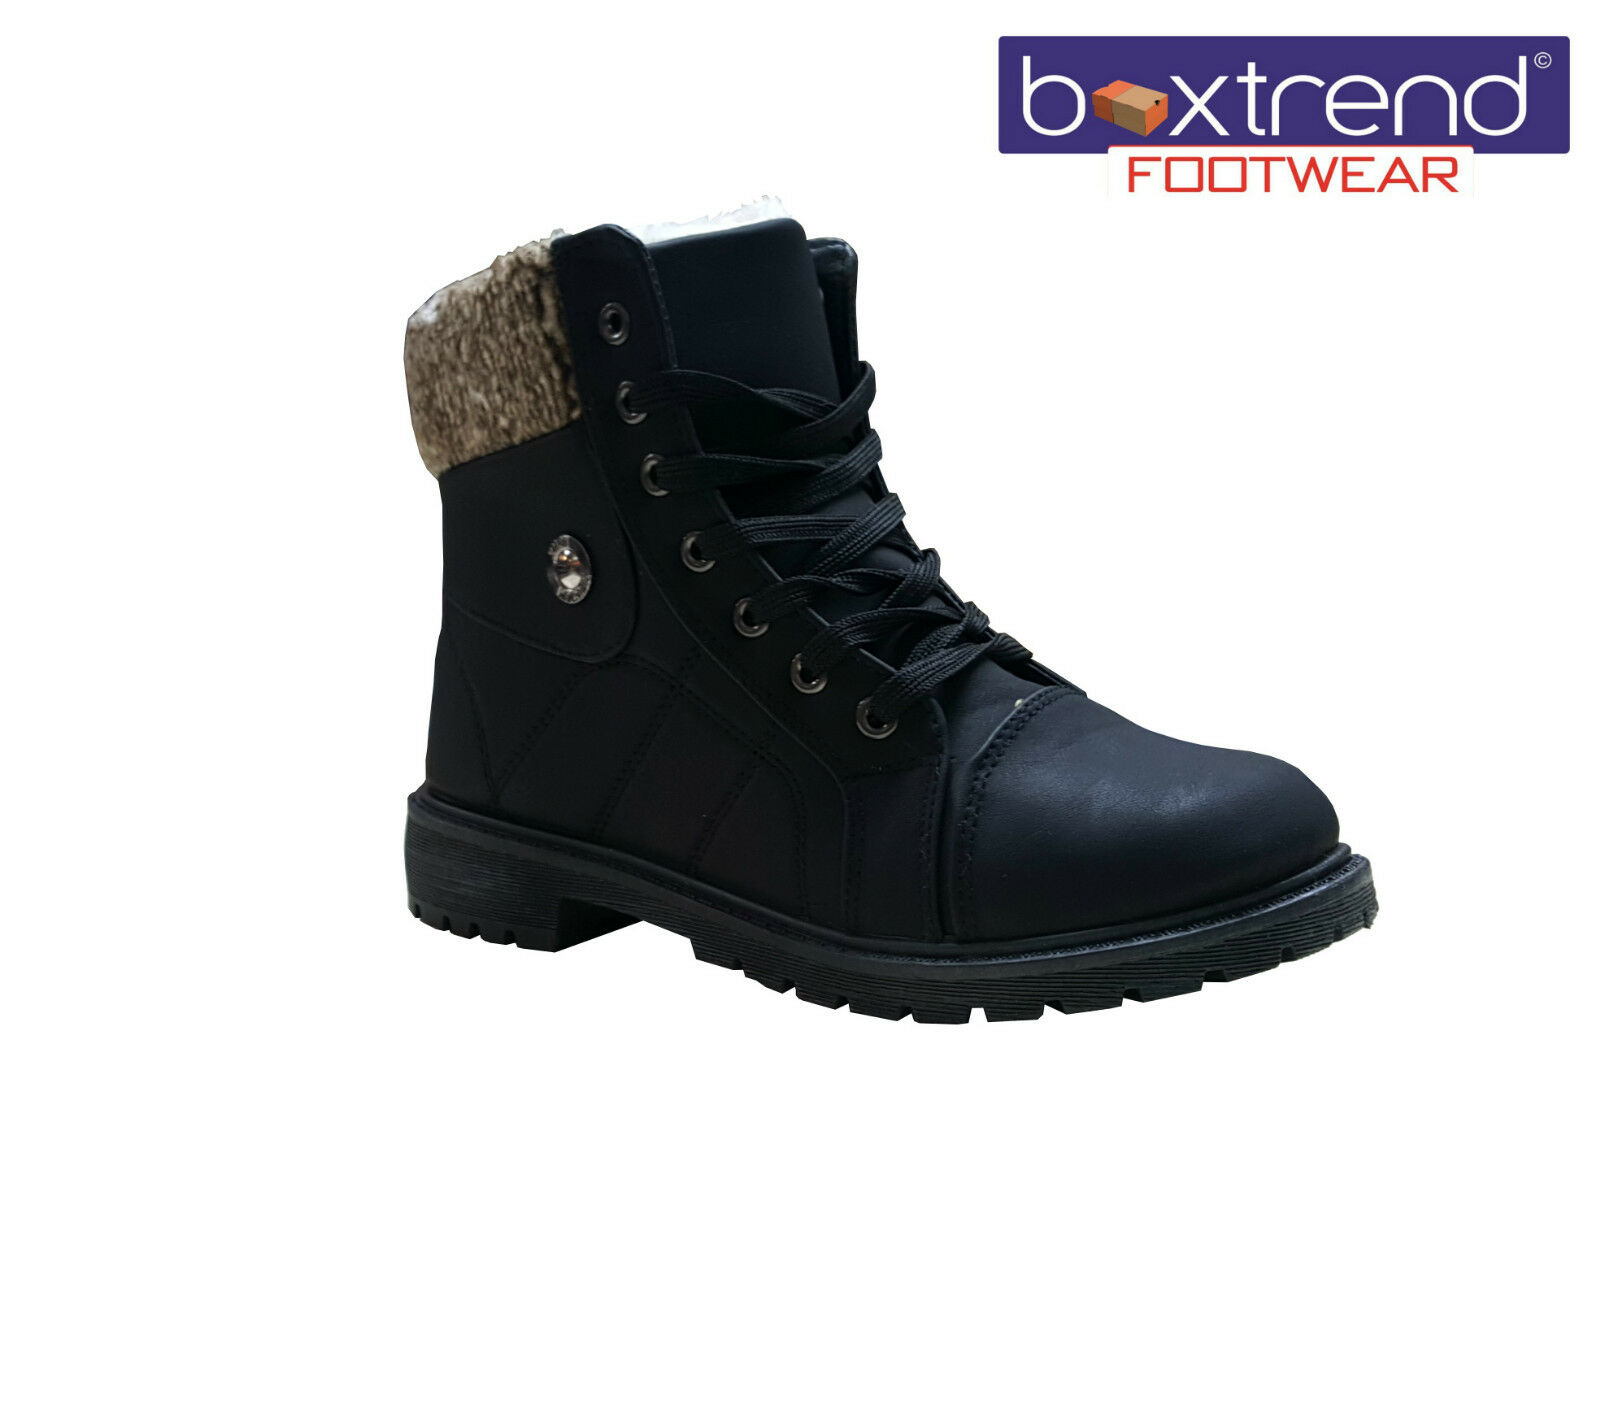 NEW LADIES WOMENS FLEECE LACE UP WARM FUR LINED WINTER BOOTS HIGH TOP BLACK SIZE